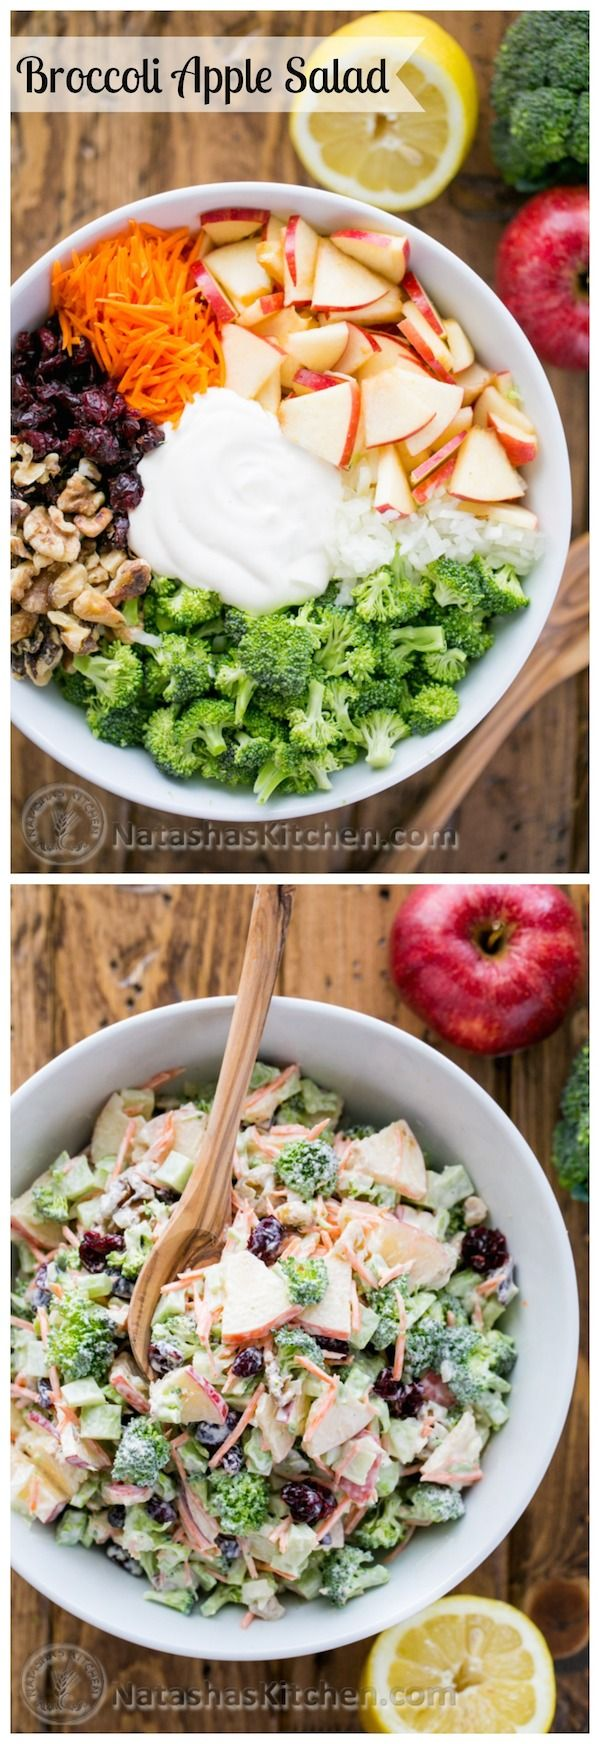 Broccoli and Apple Salad with a Creamy Lemon Dressing